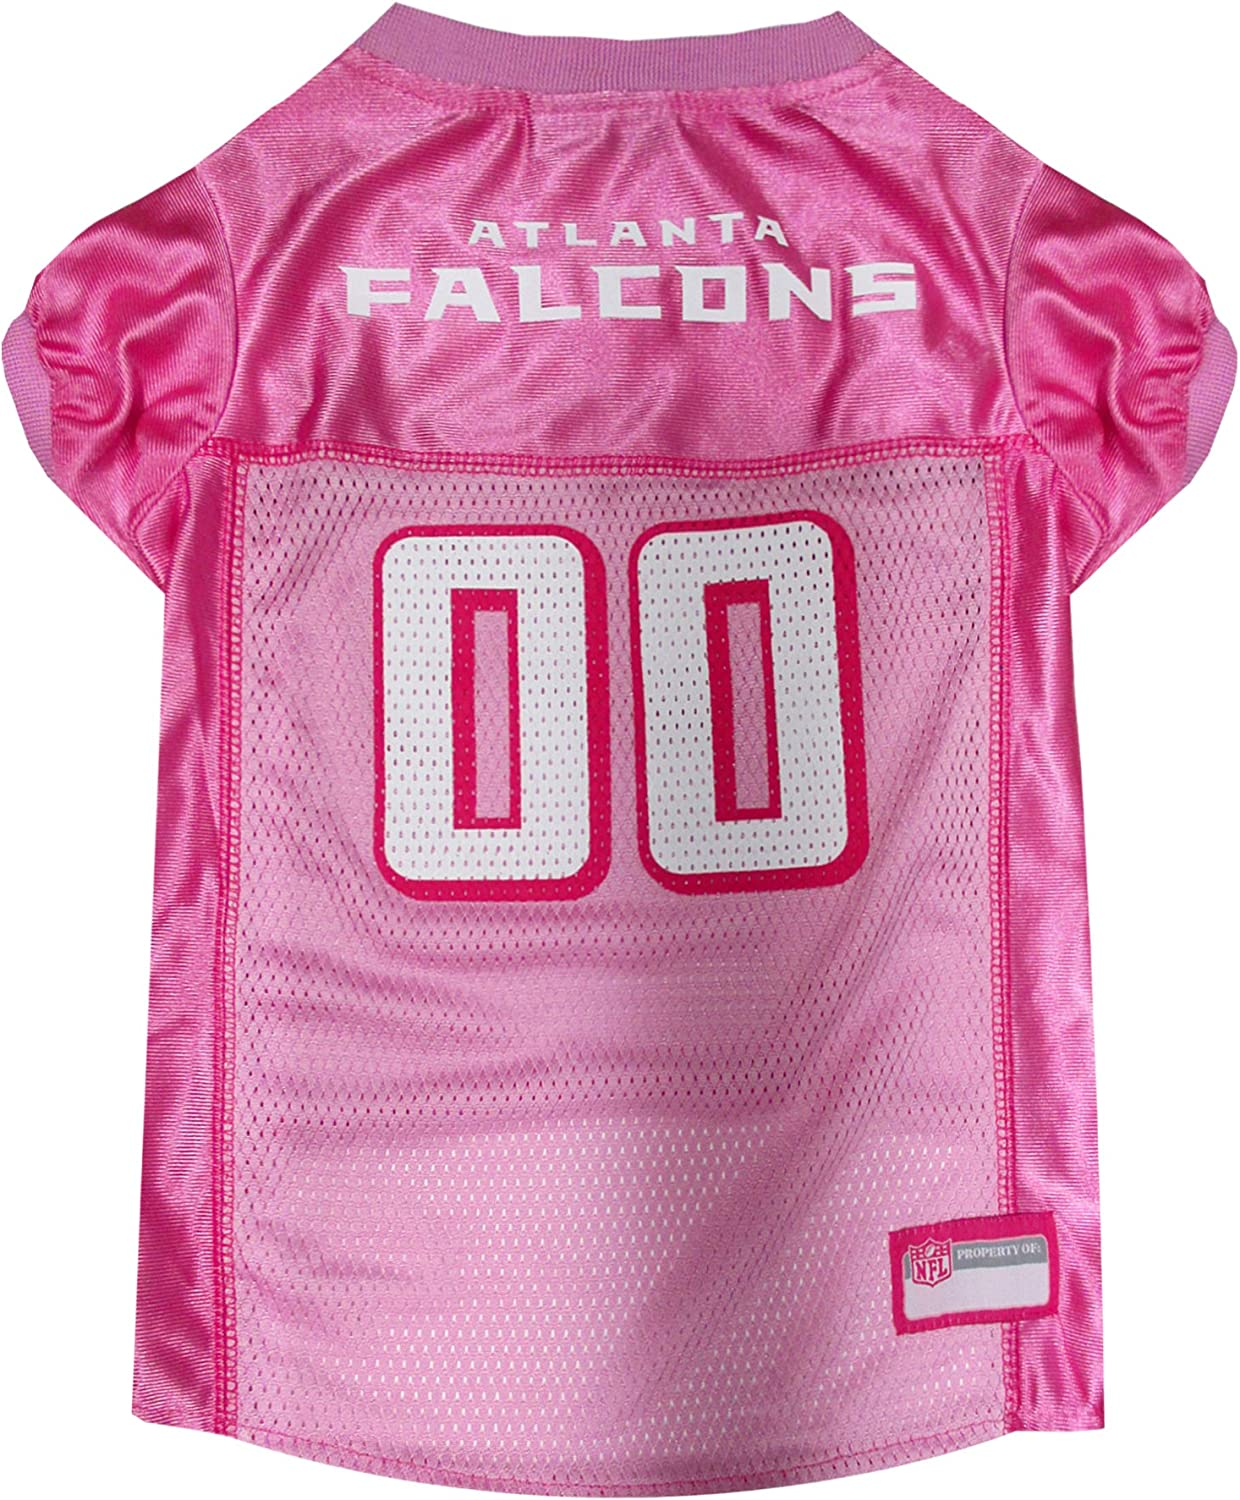 pink falcons jersey